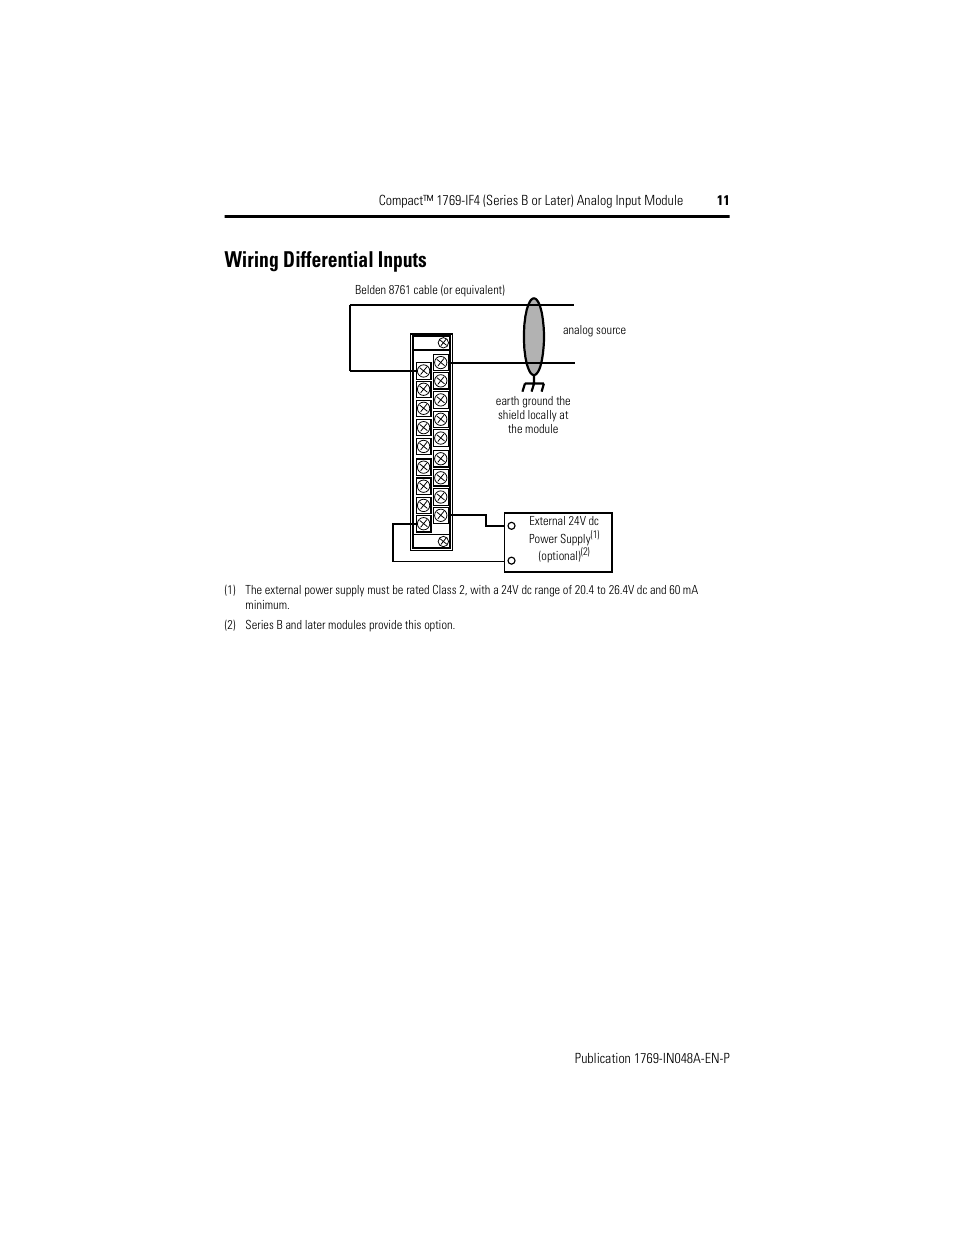 Wiring Differential Inputs